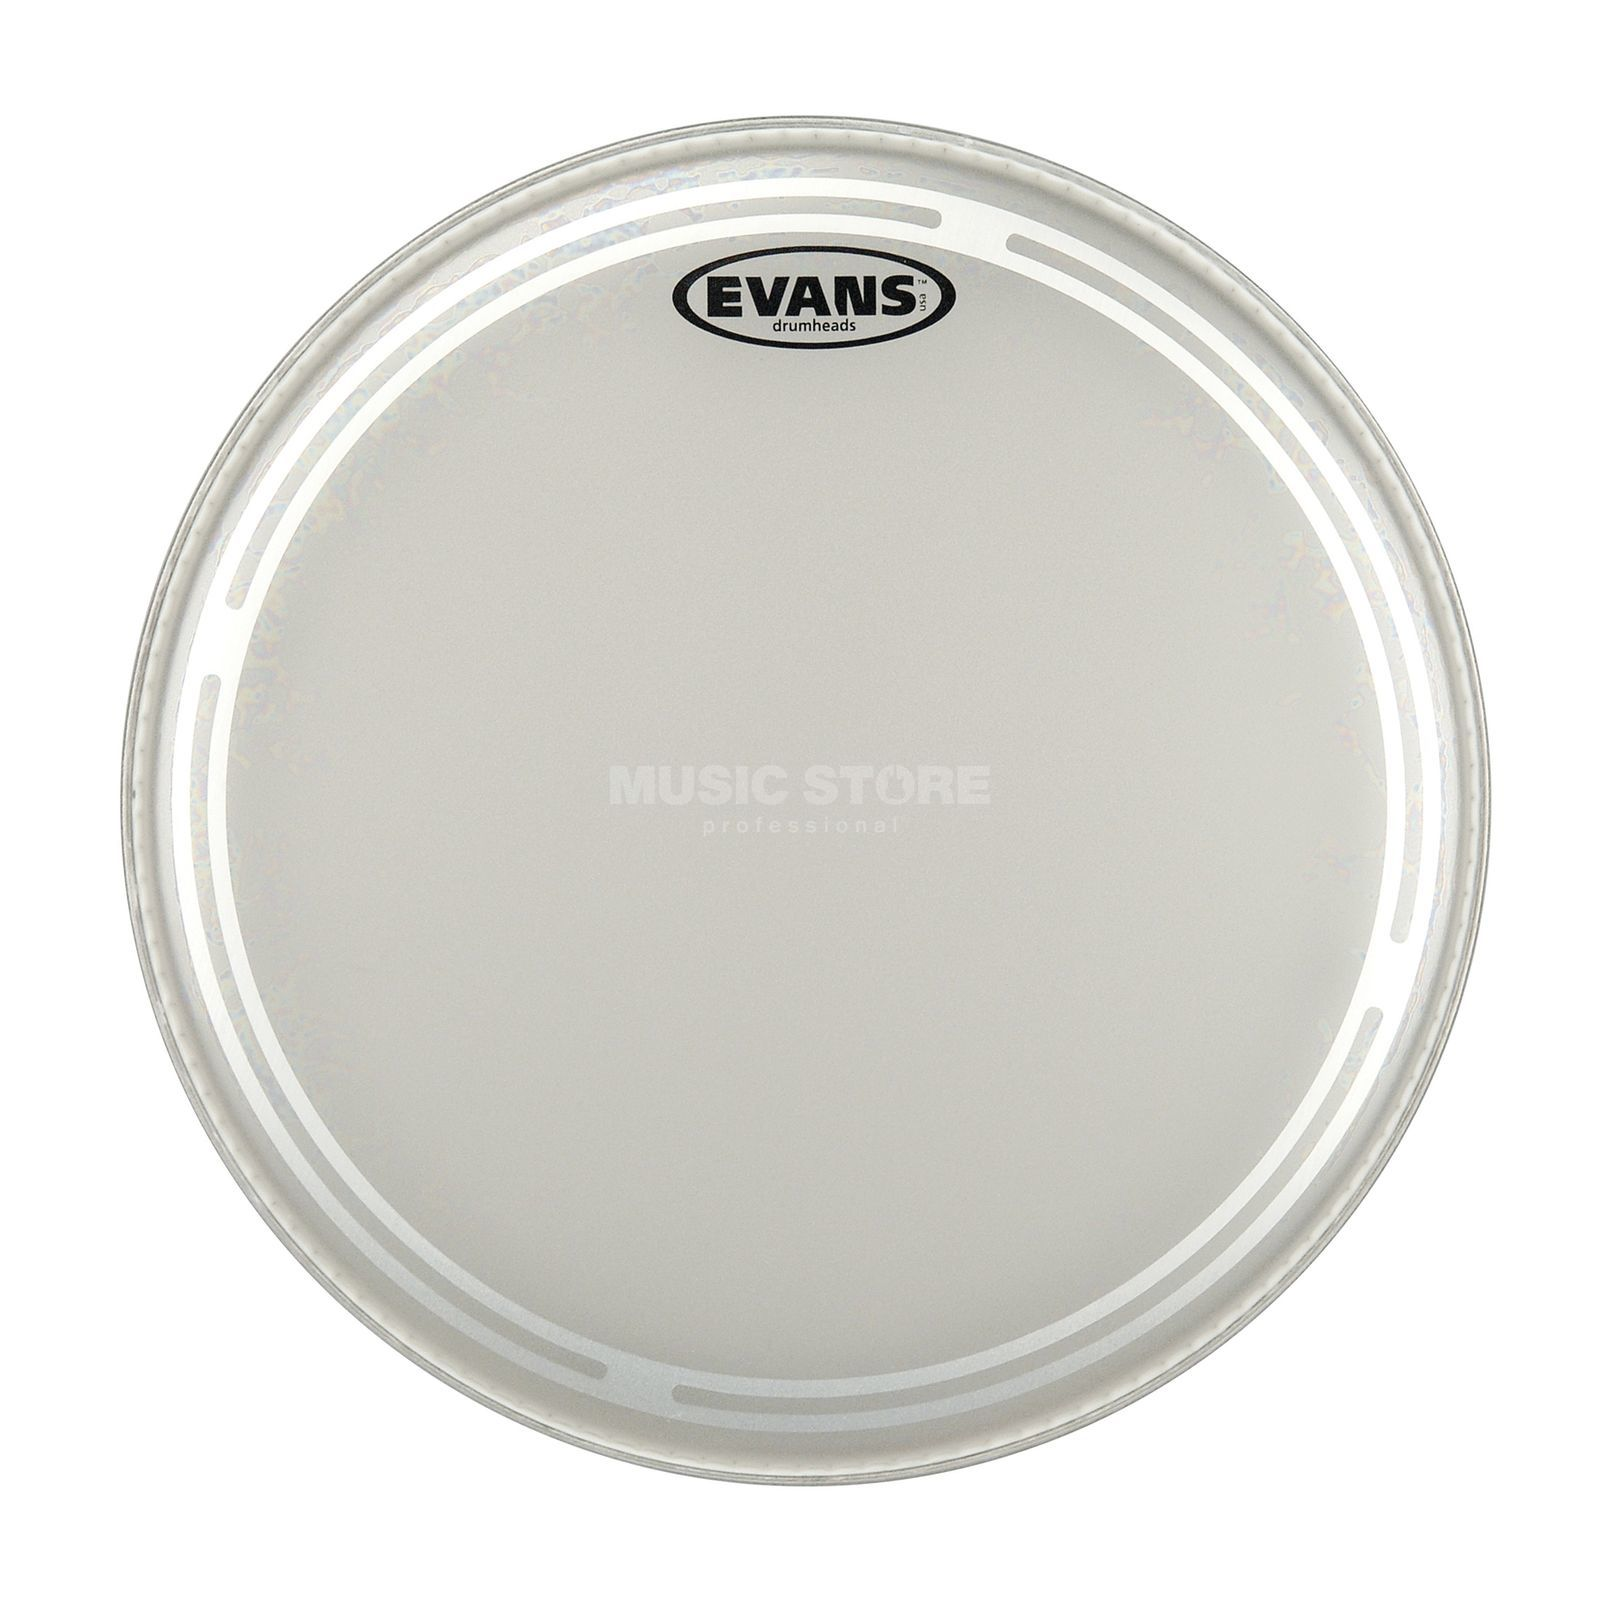 "Evans EC2, 12"", coated, Tom Batter Head,  B-Stock Product Image"